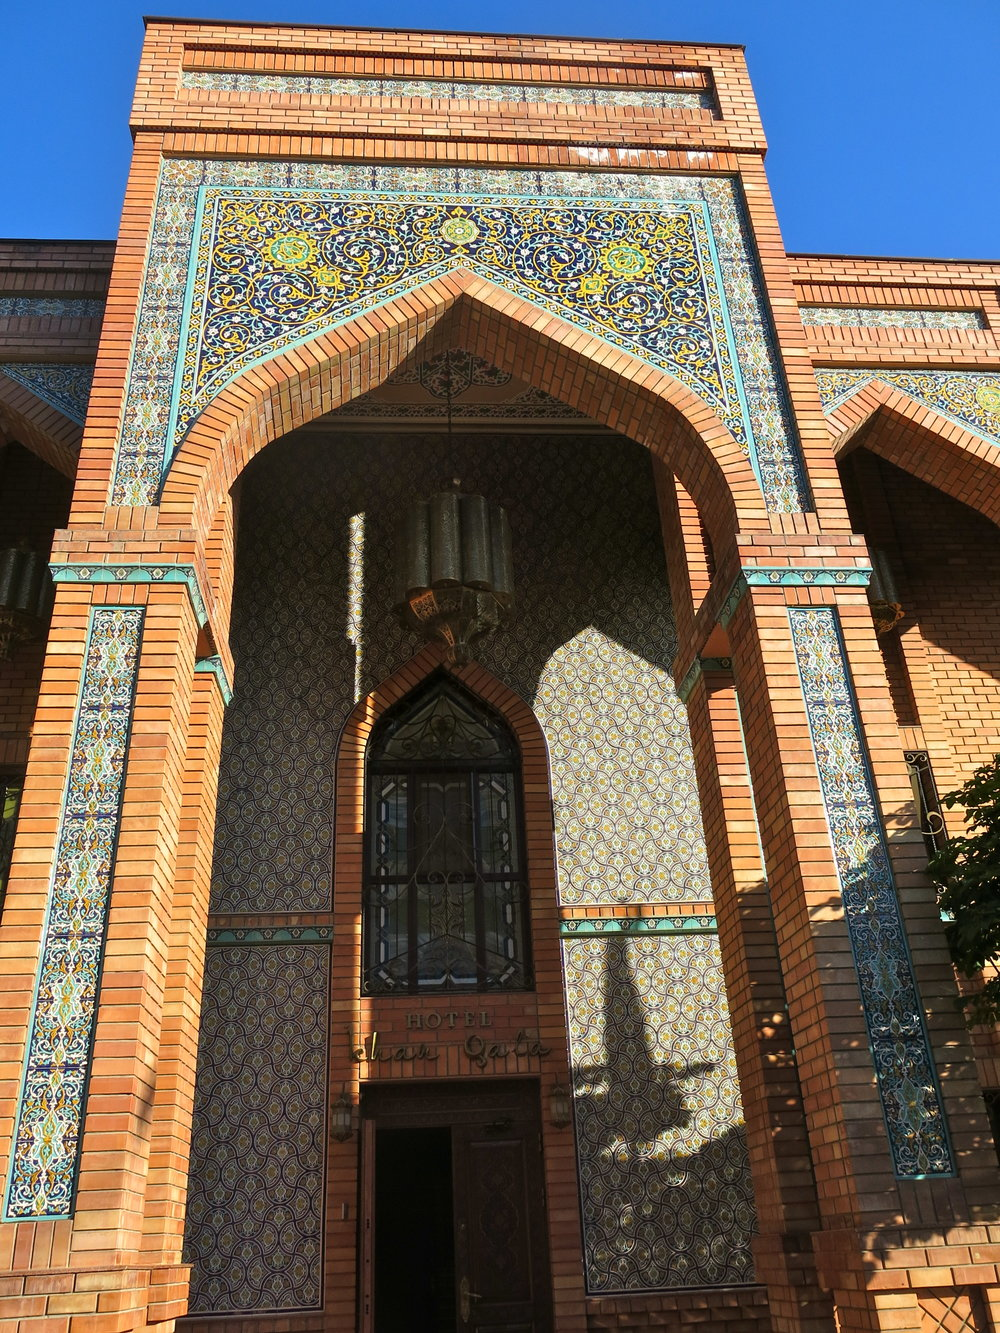 Entrance hall of our boutique hotel in Tashkent: the Ichan Qala